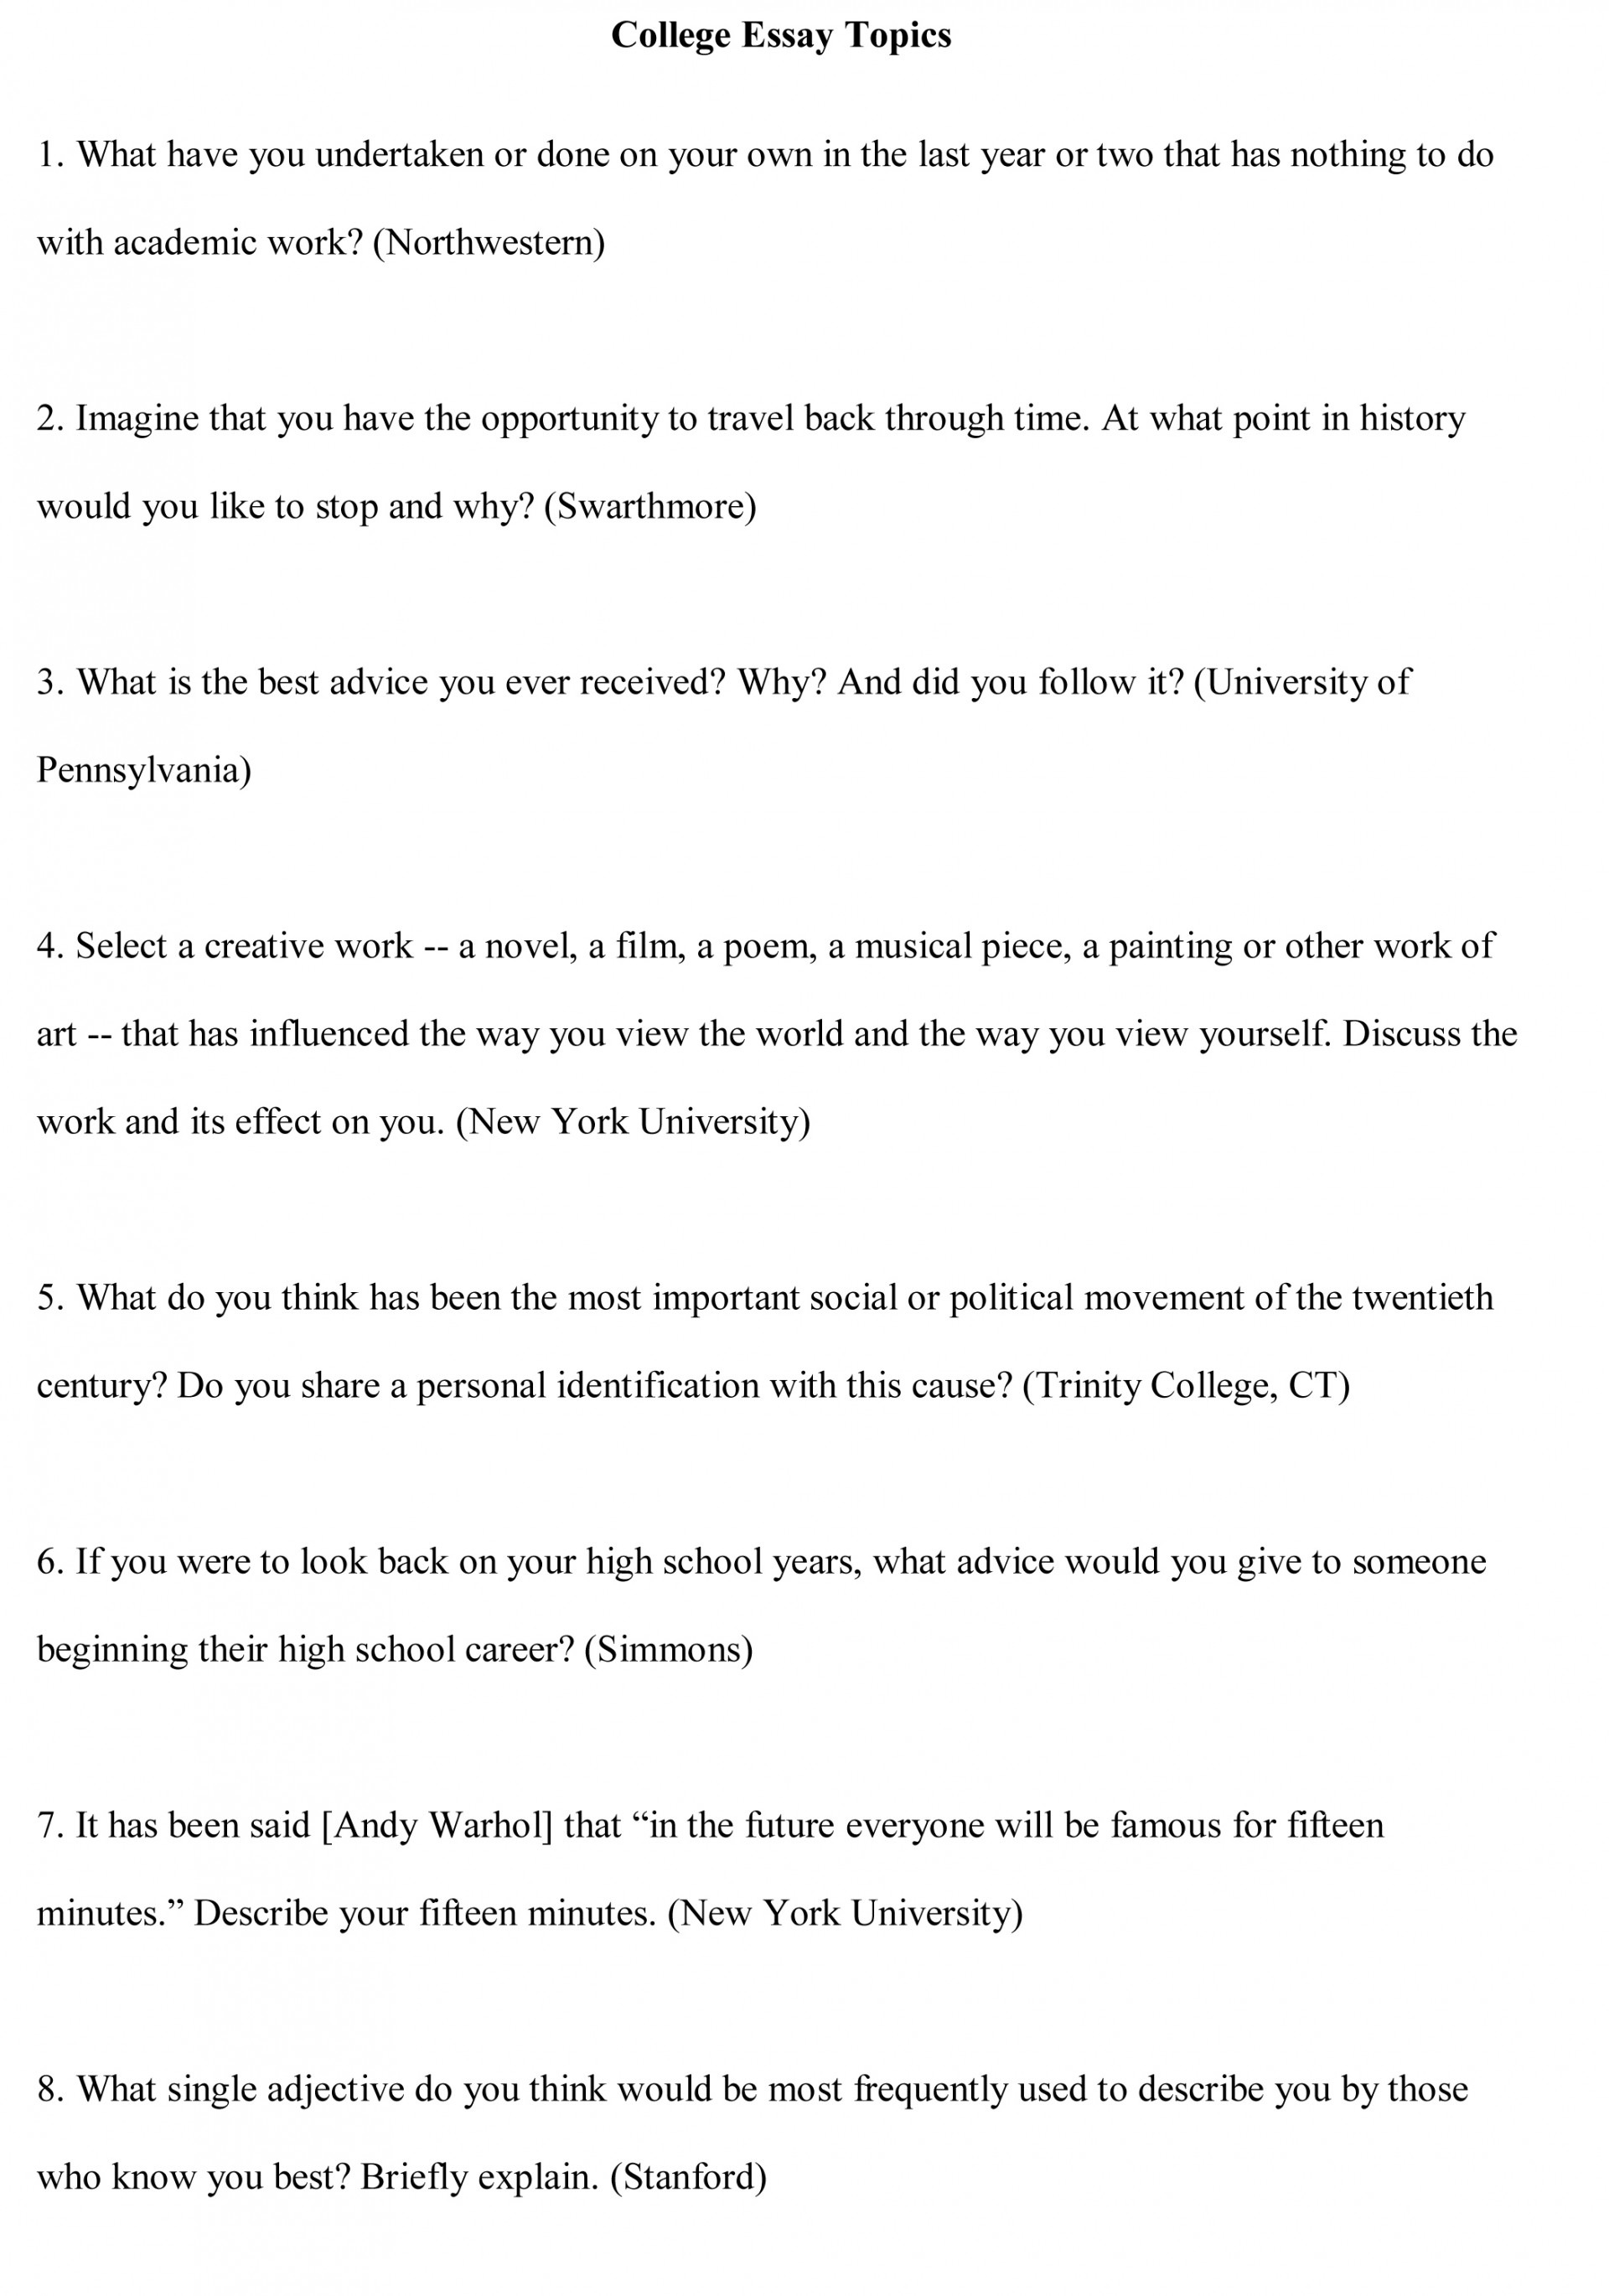 024 College Essay Topics Free Sample1 Example Dreaded Informative Prompts High School 2018 Middle 1920